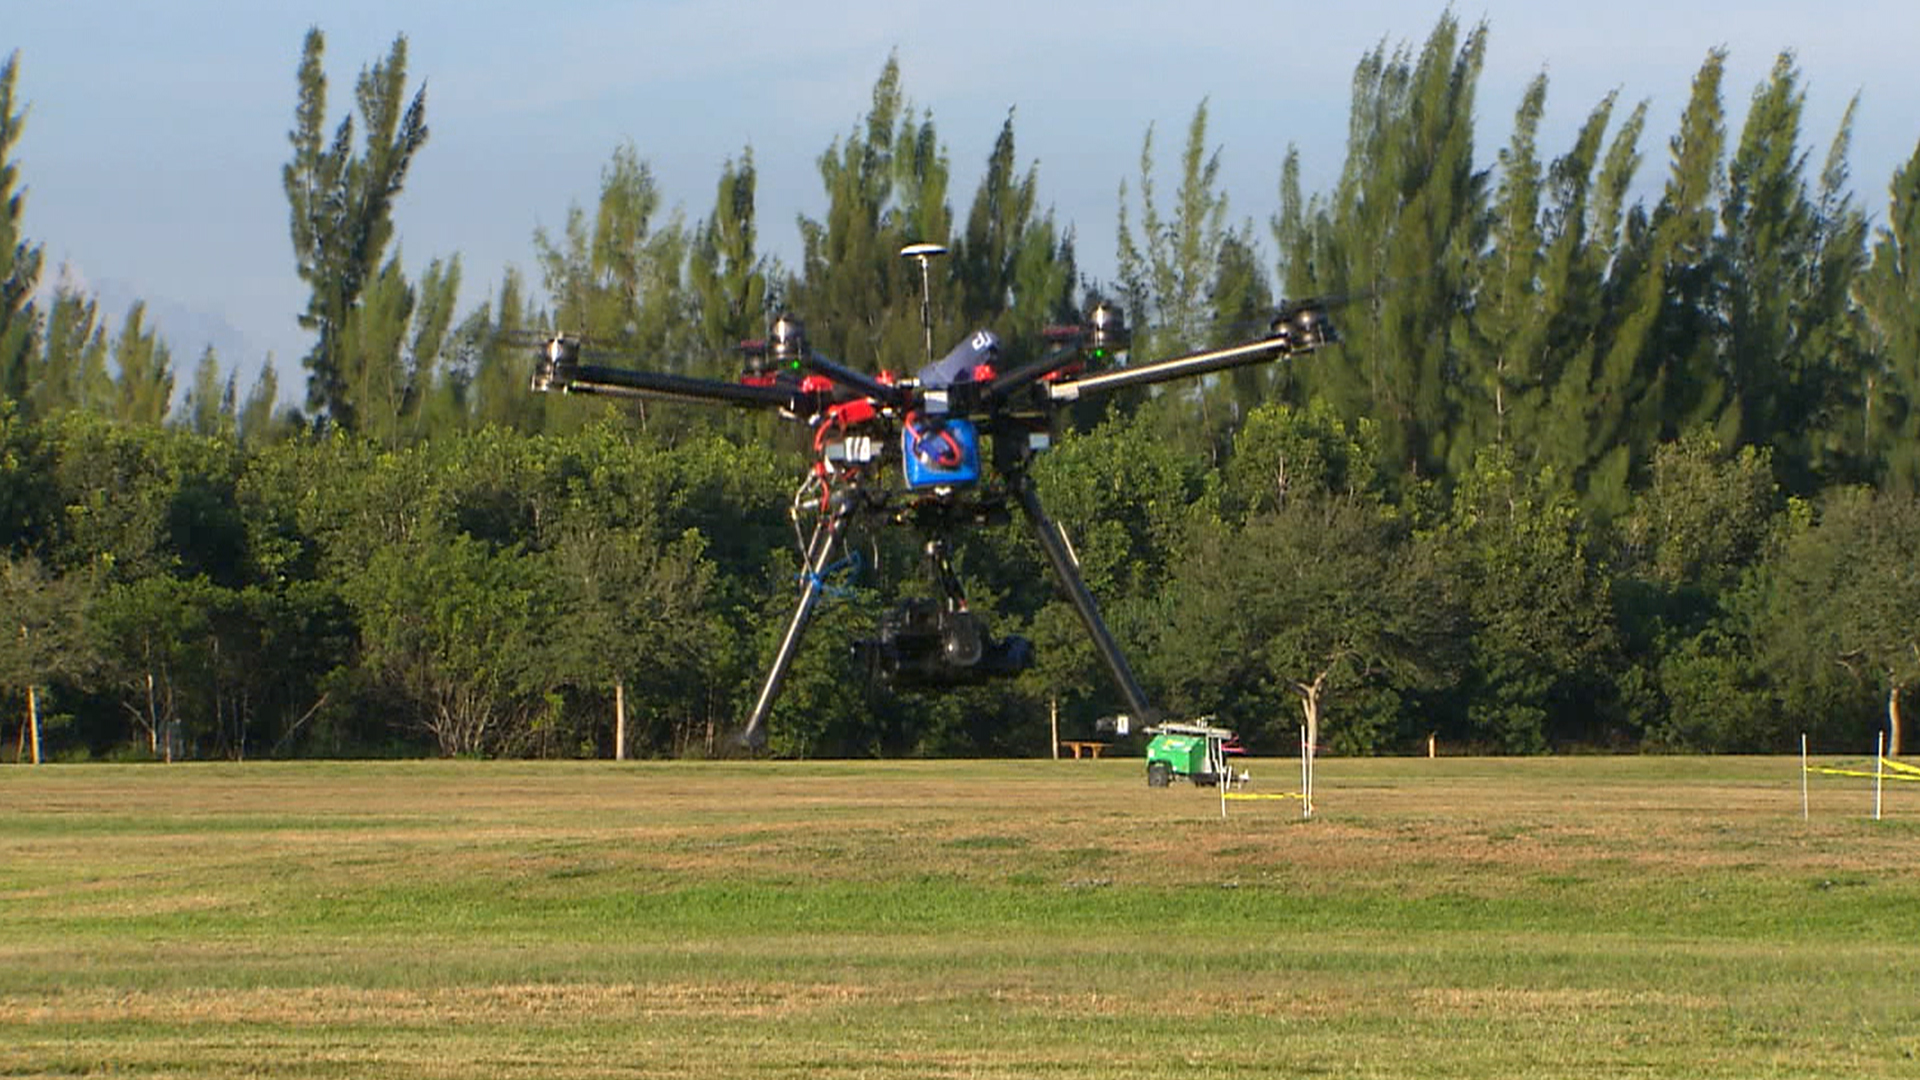 Fail to Register Your Drone? You Could Be Hit With $27K Fine